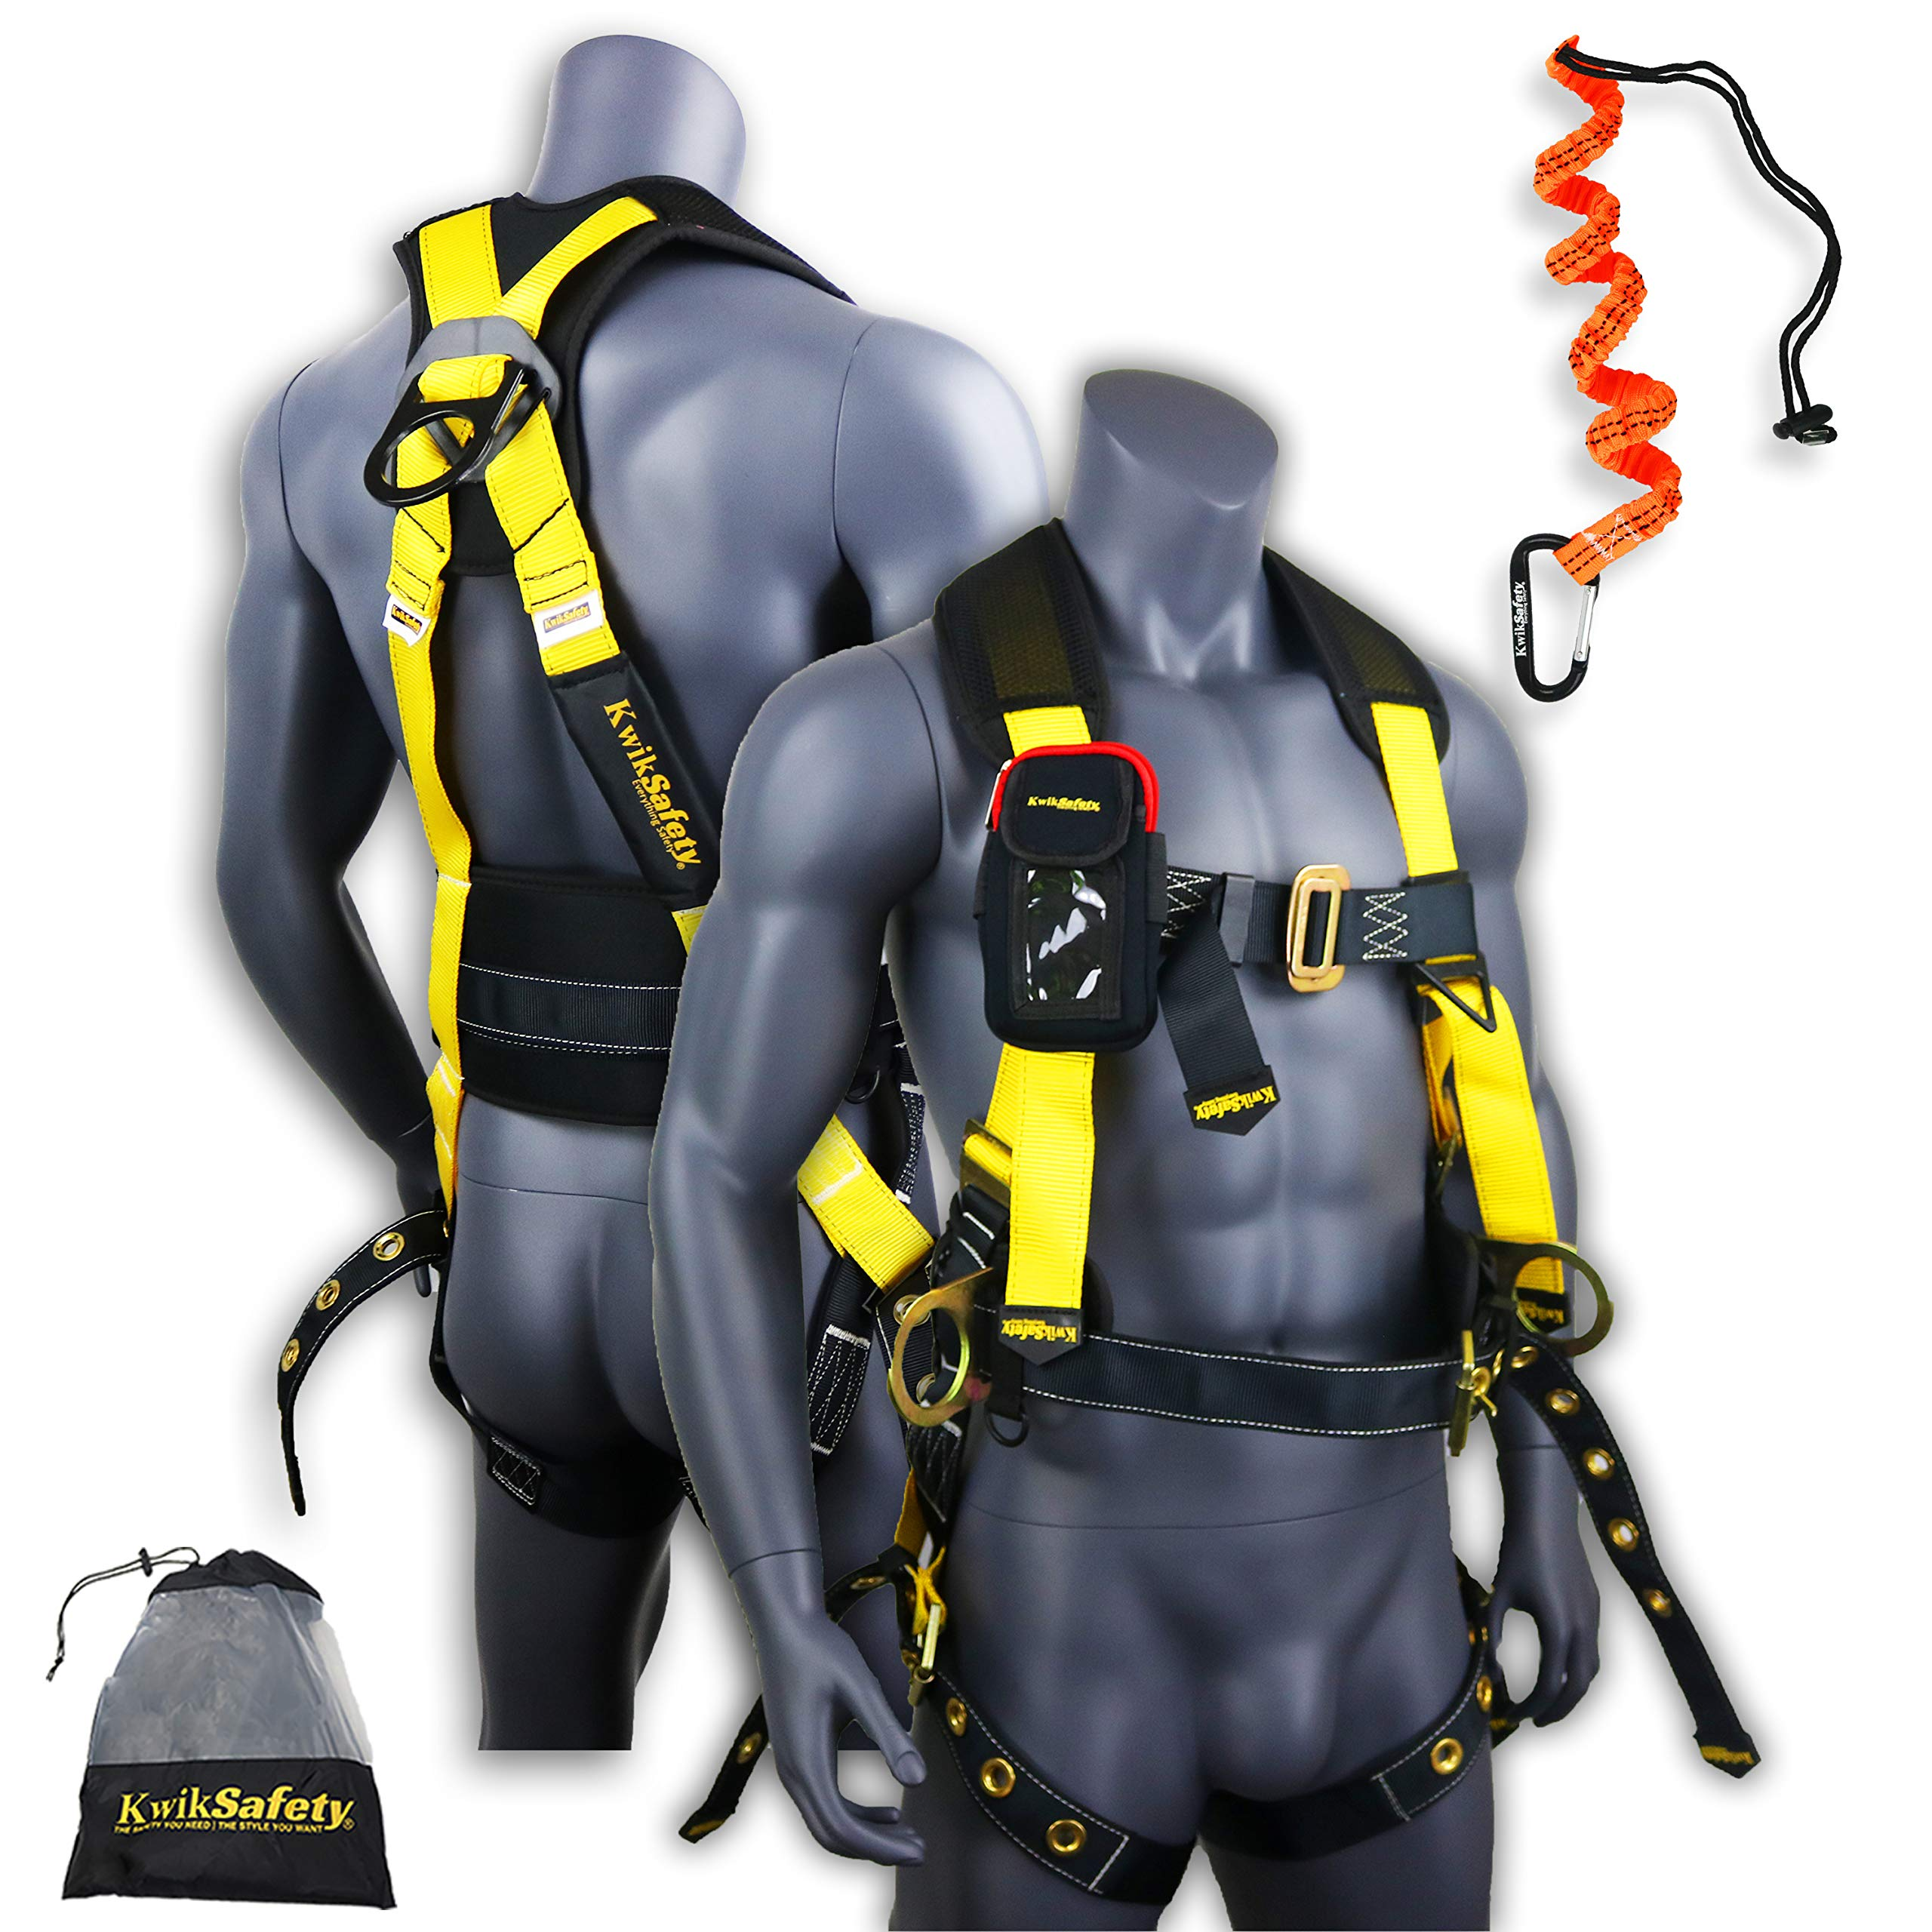 KwikSafety (Charlotte, NC) TYPHOON | ANSI Fall Protection Full Body Safety Harness | Personal Protective Equipment | Dorsal Ring Side D-Rings Grommet Leg Straps Tool Lanyard Bolt Pouch, Construction by KwikSafety (Image #1)